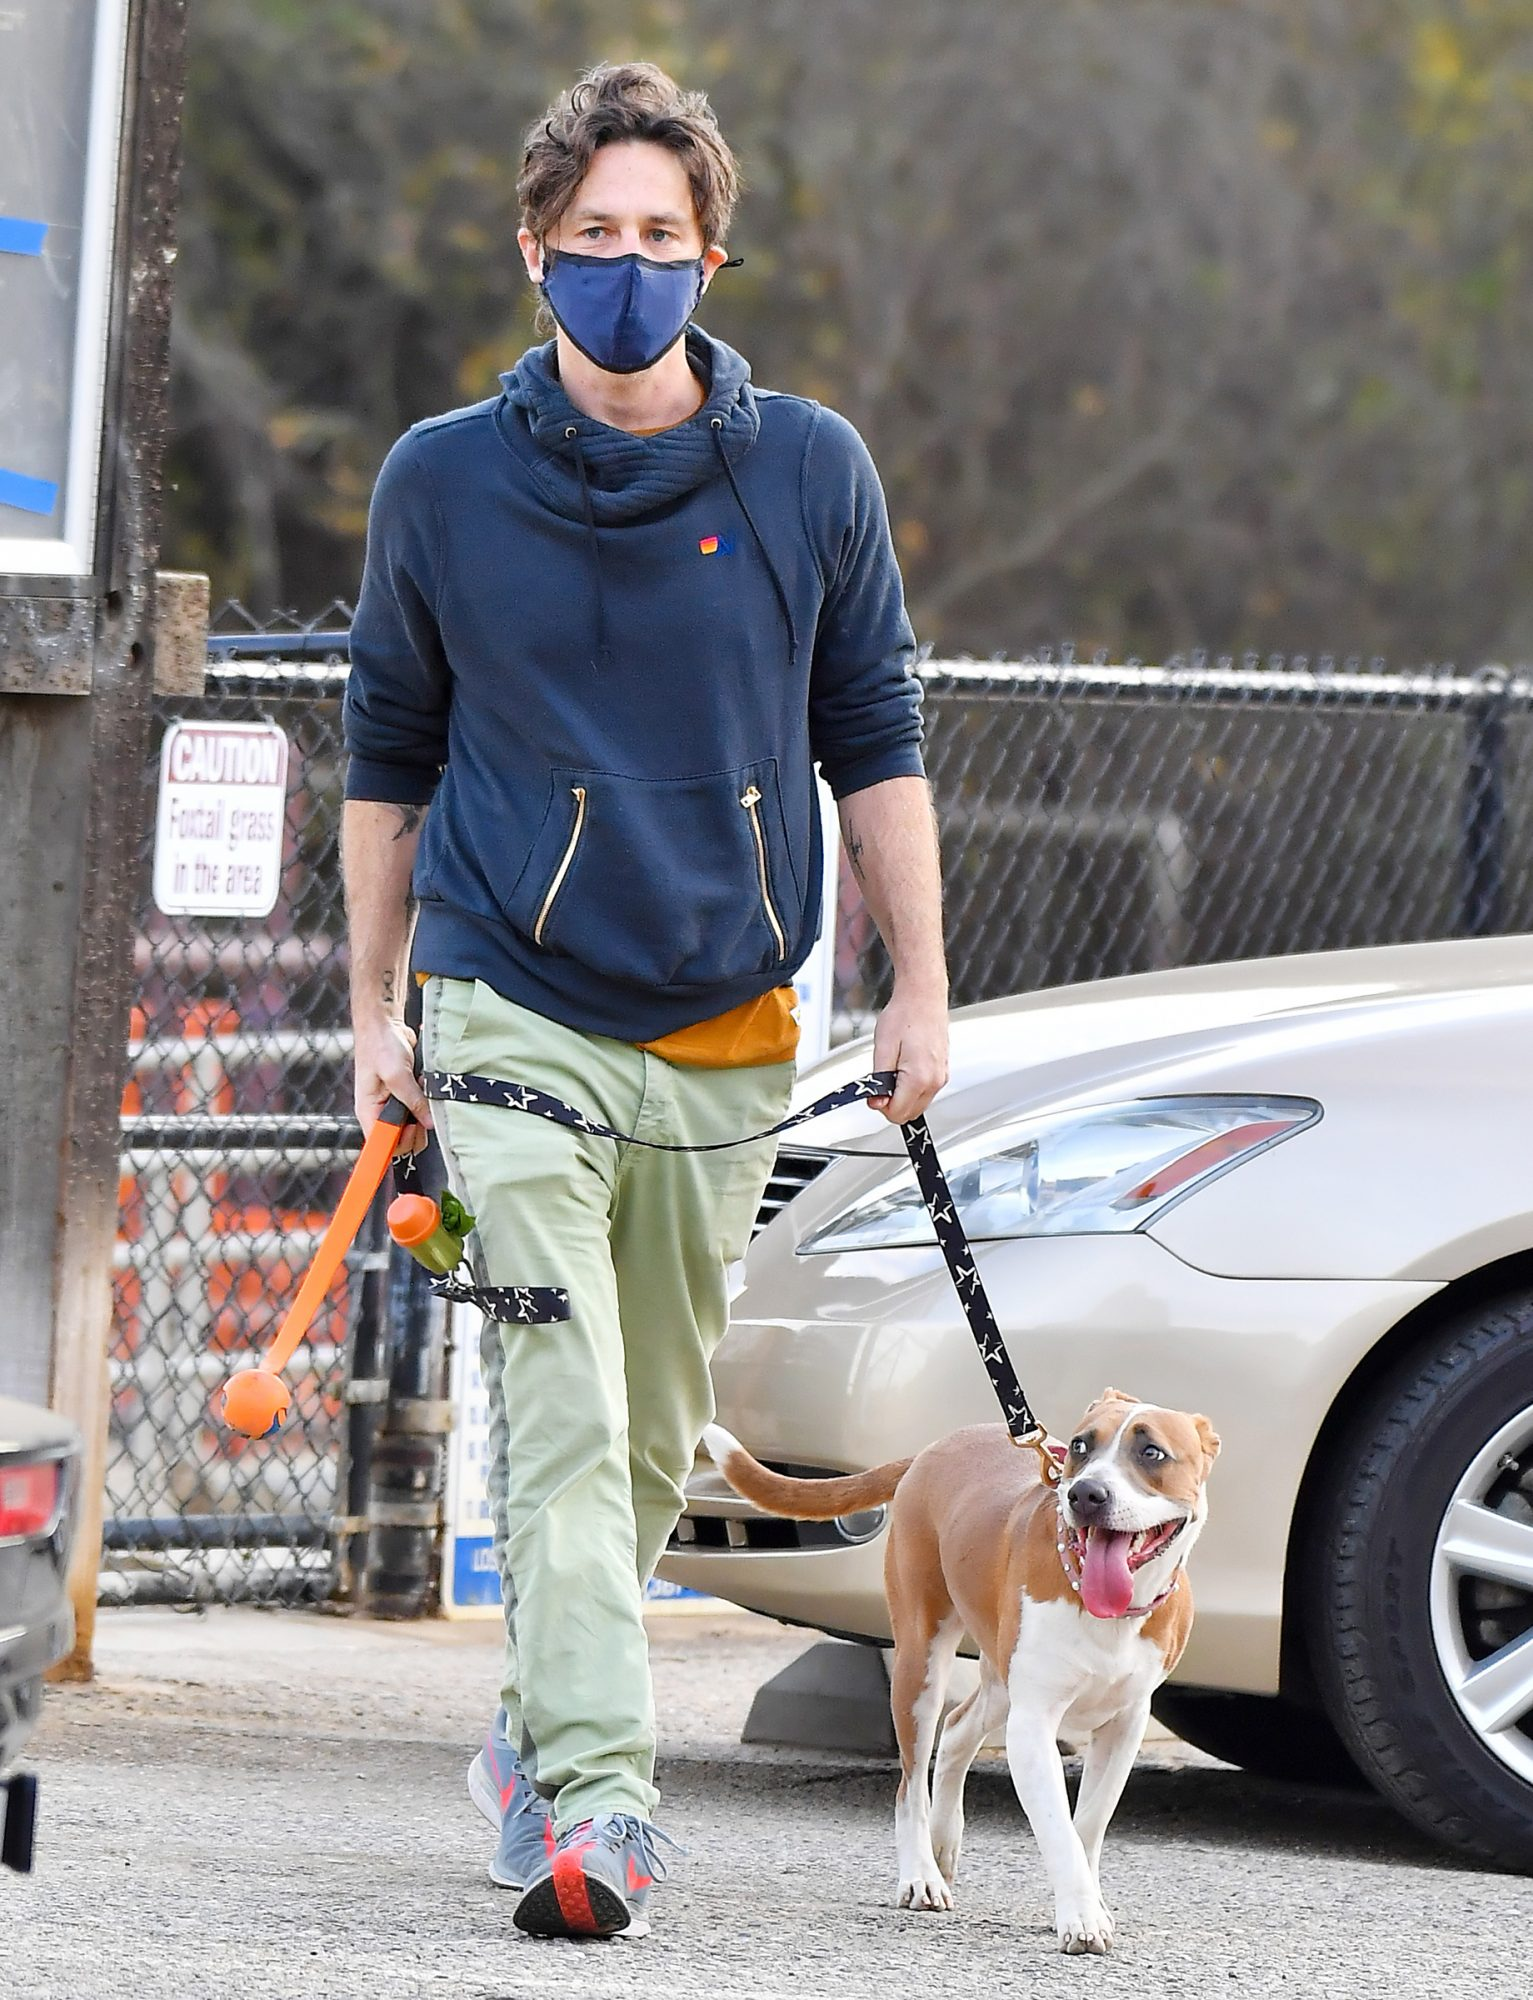 Zach Braff Takes His Very Excited Dog To His Local Dog Park